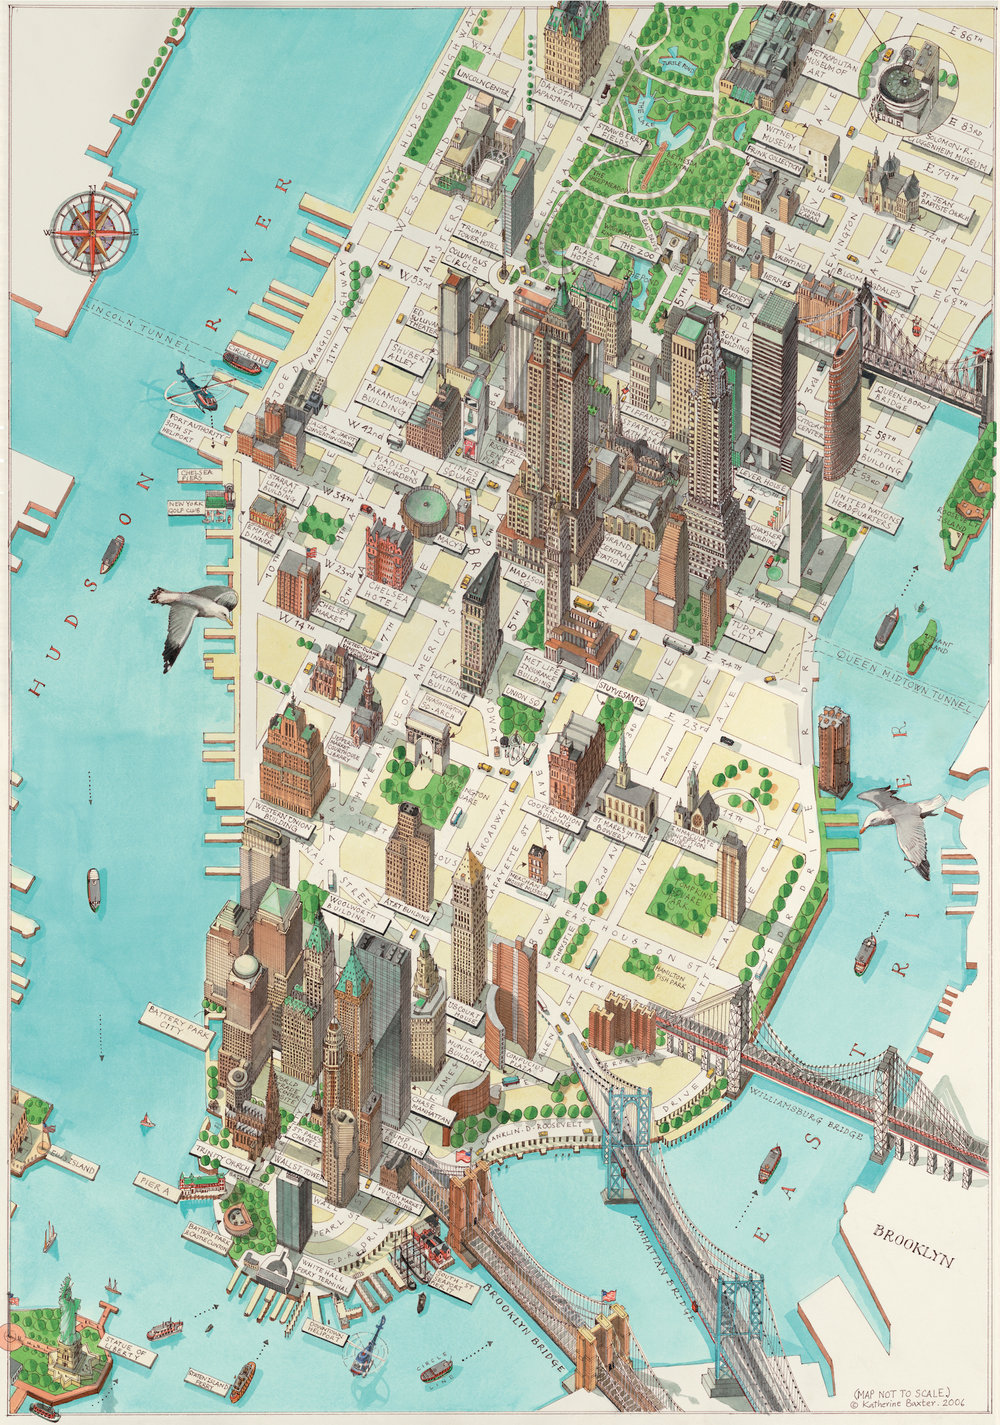 Katherine Baxter | Illustrated Maps-New York